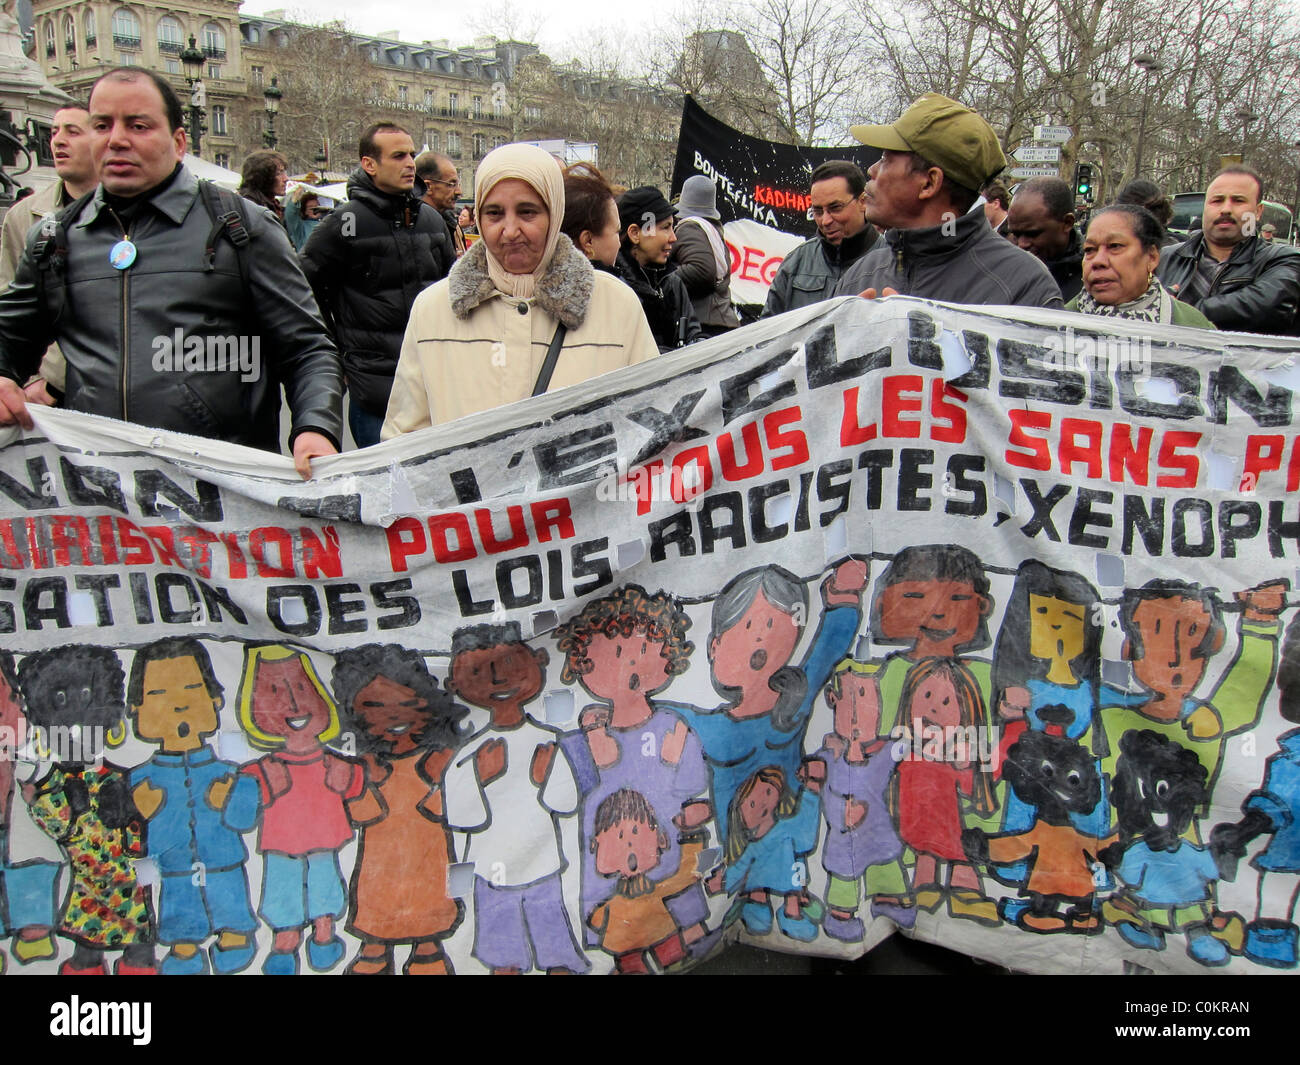 Paris, France, Demonstration, Group Immigrants Without Documents, 'Sans Papiers' Marching, Holding Anti - Stock Image